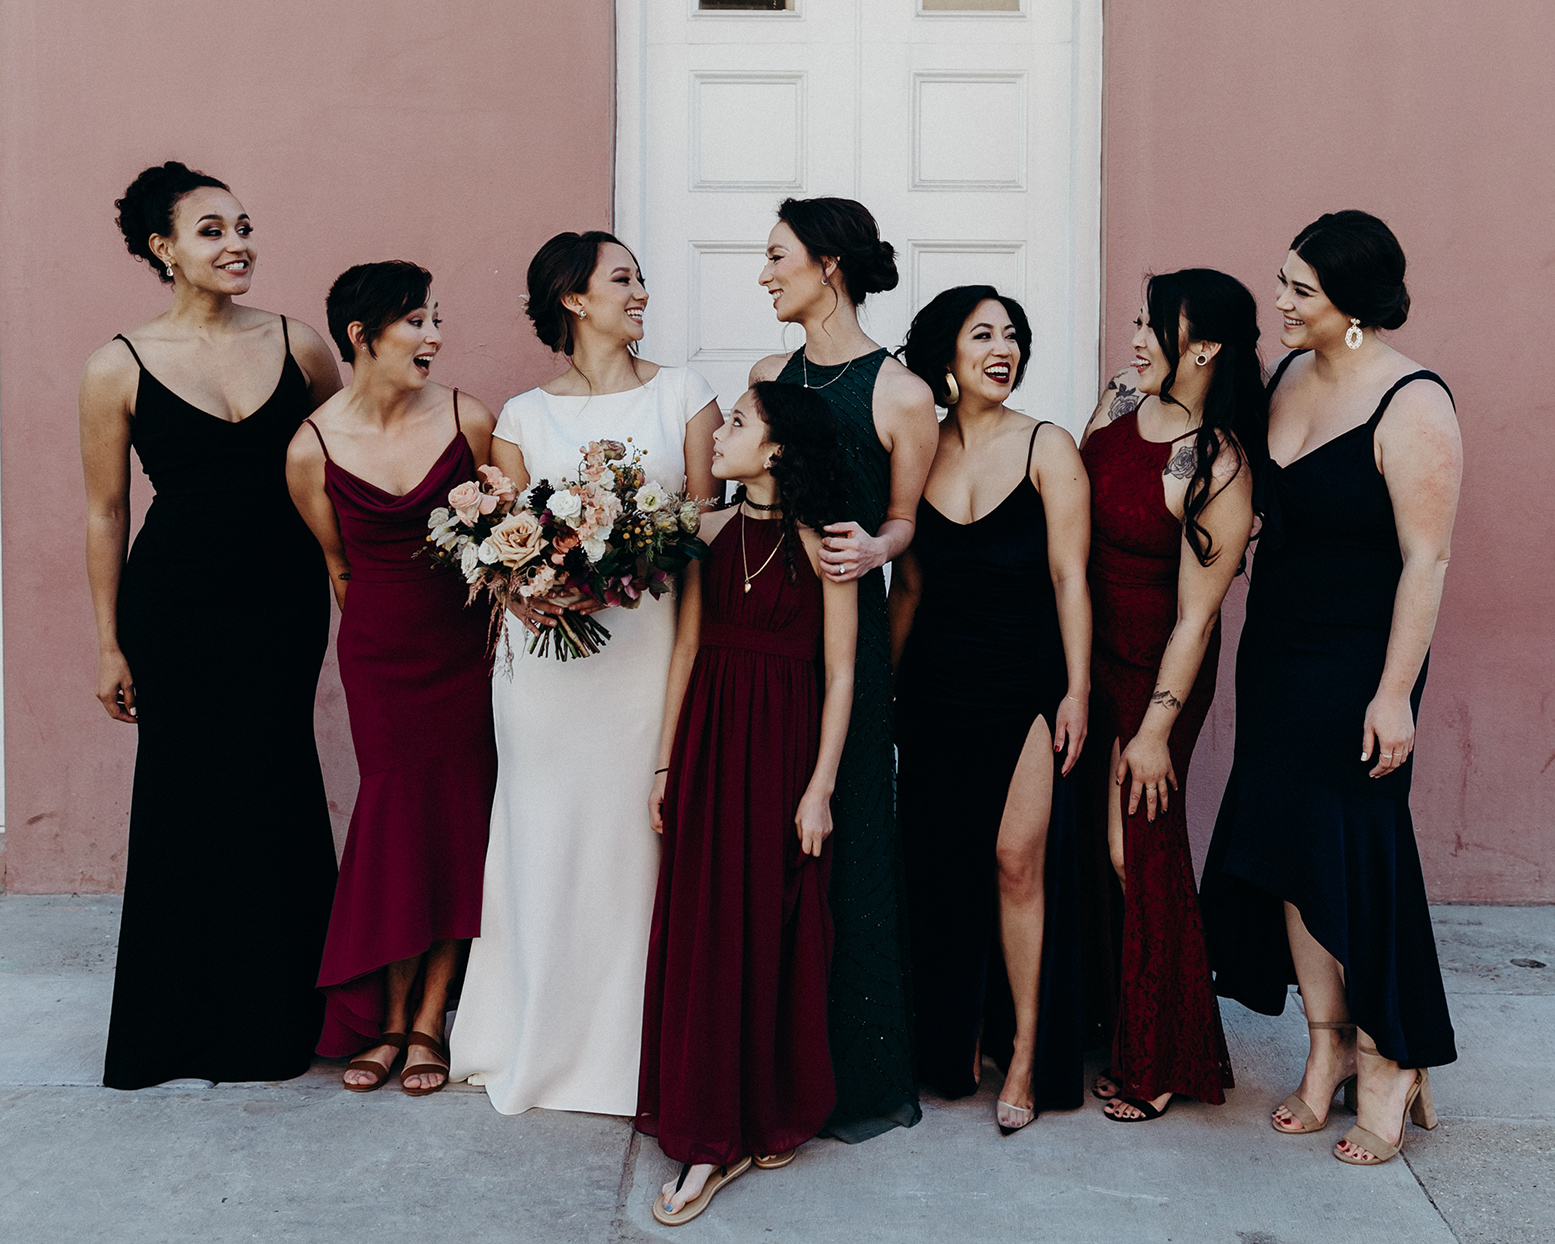 bride and wedding group in maroon and black dresses